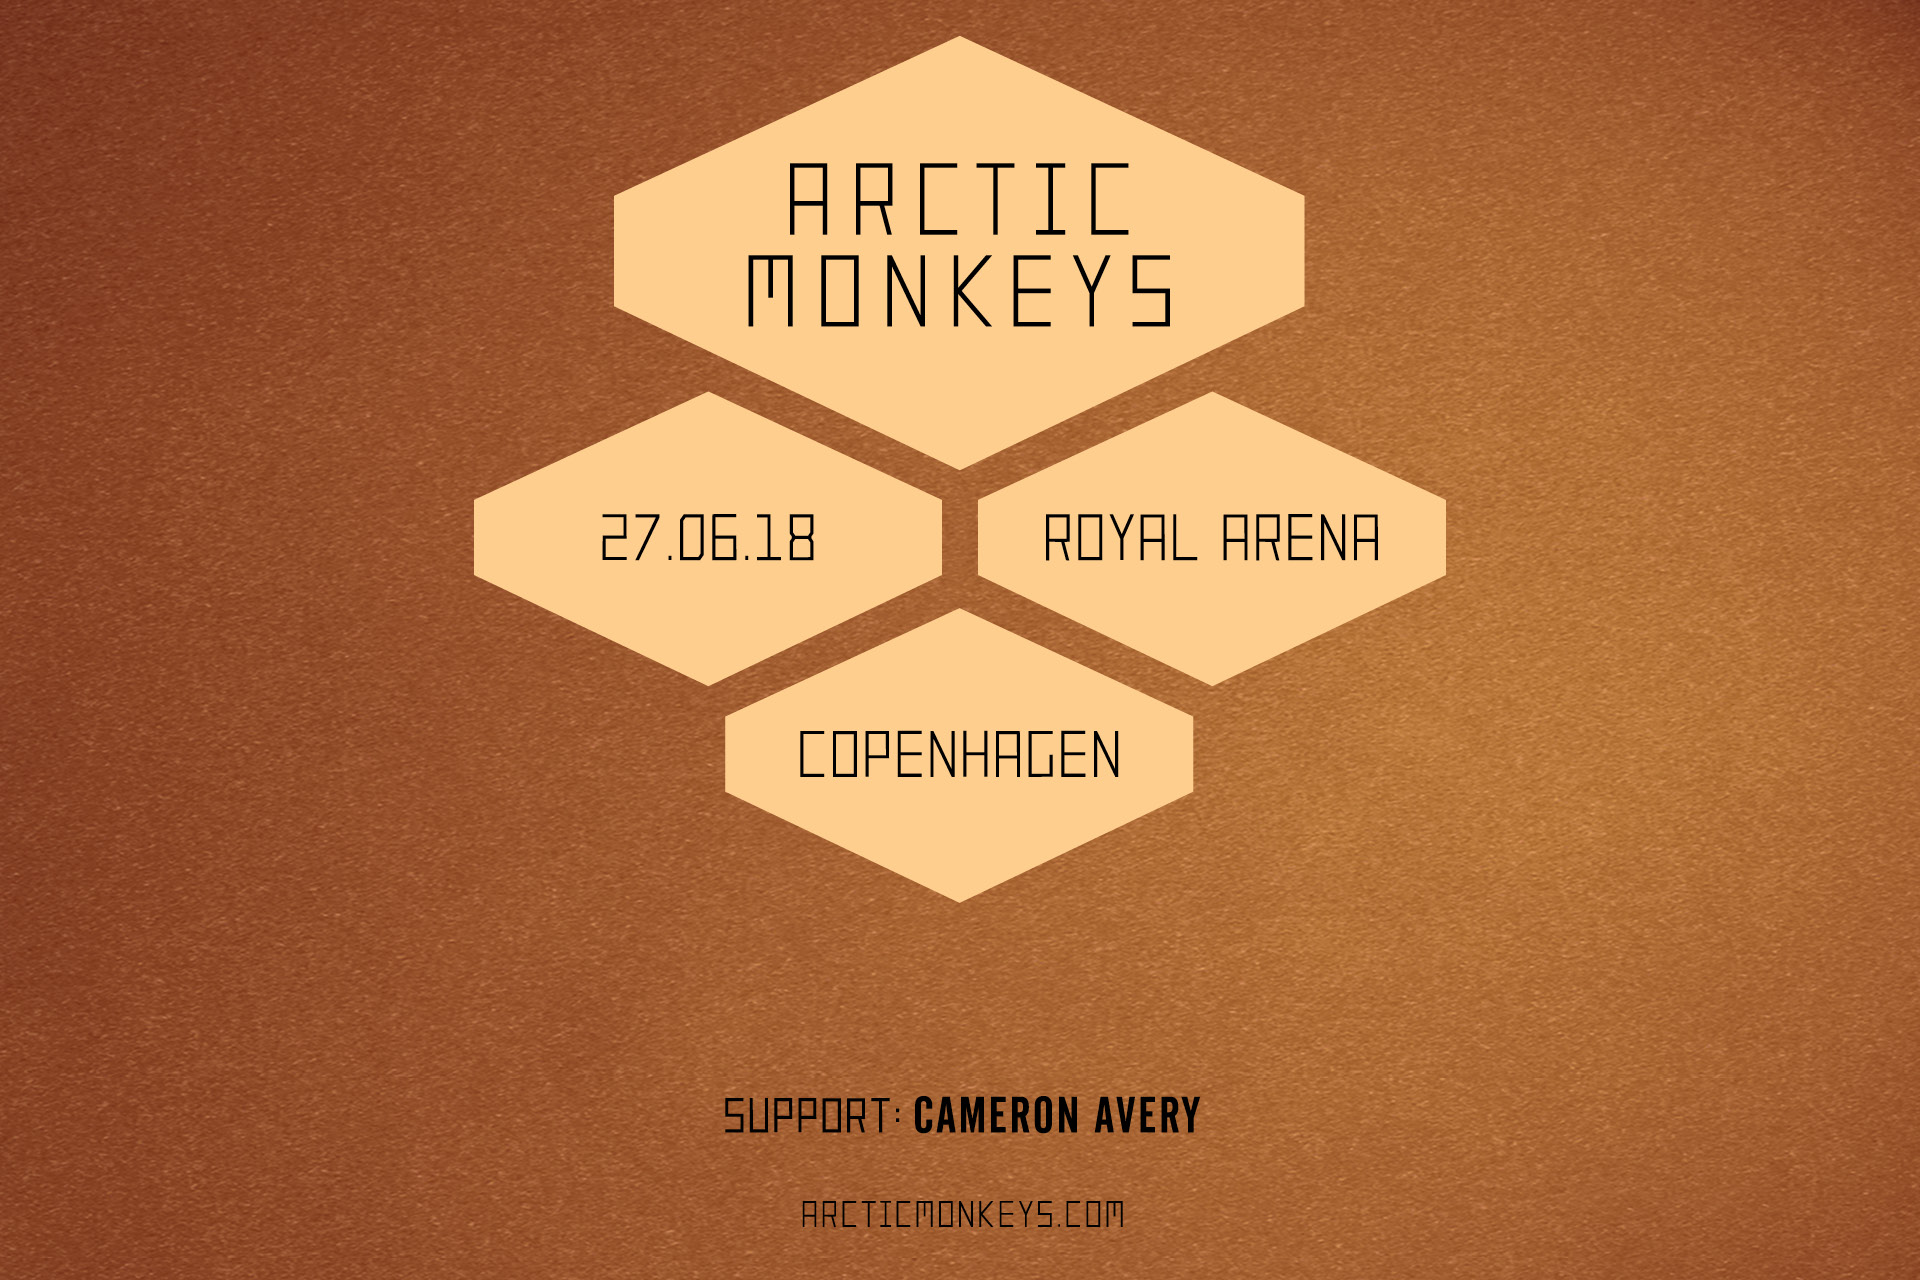 Arctic Monkeys til Royal Arena